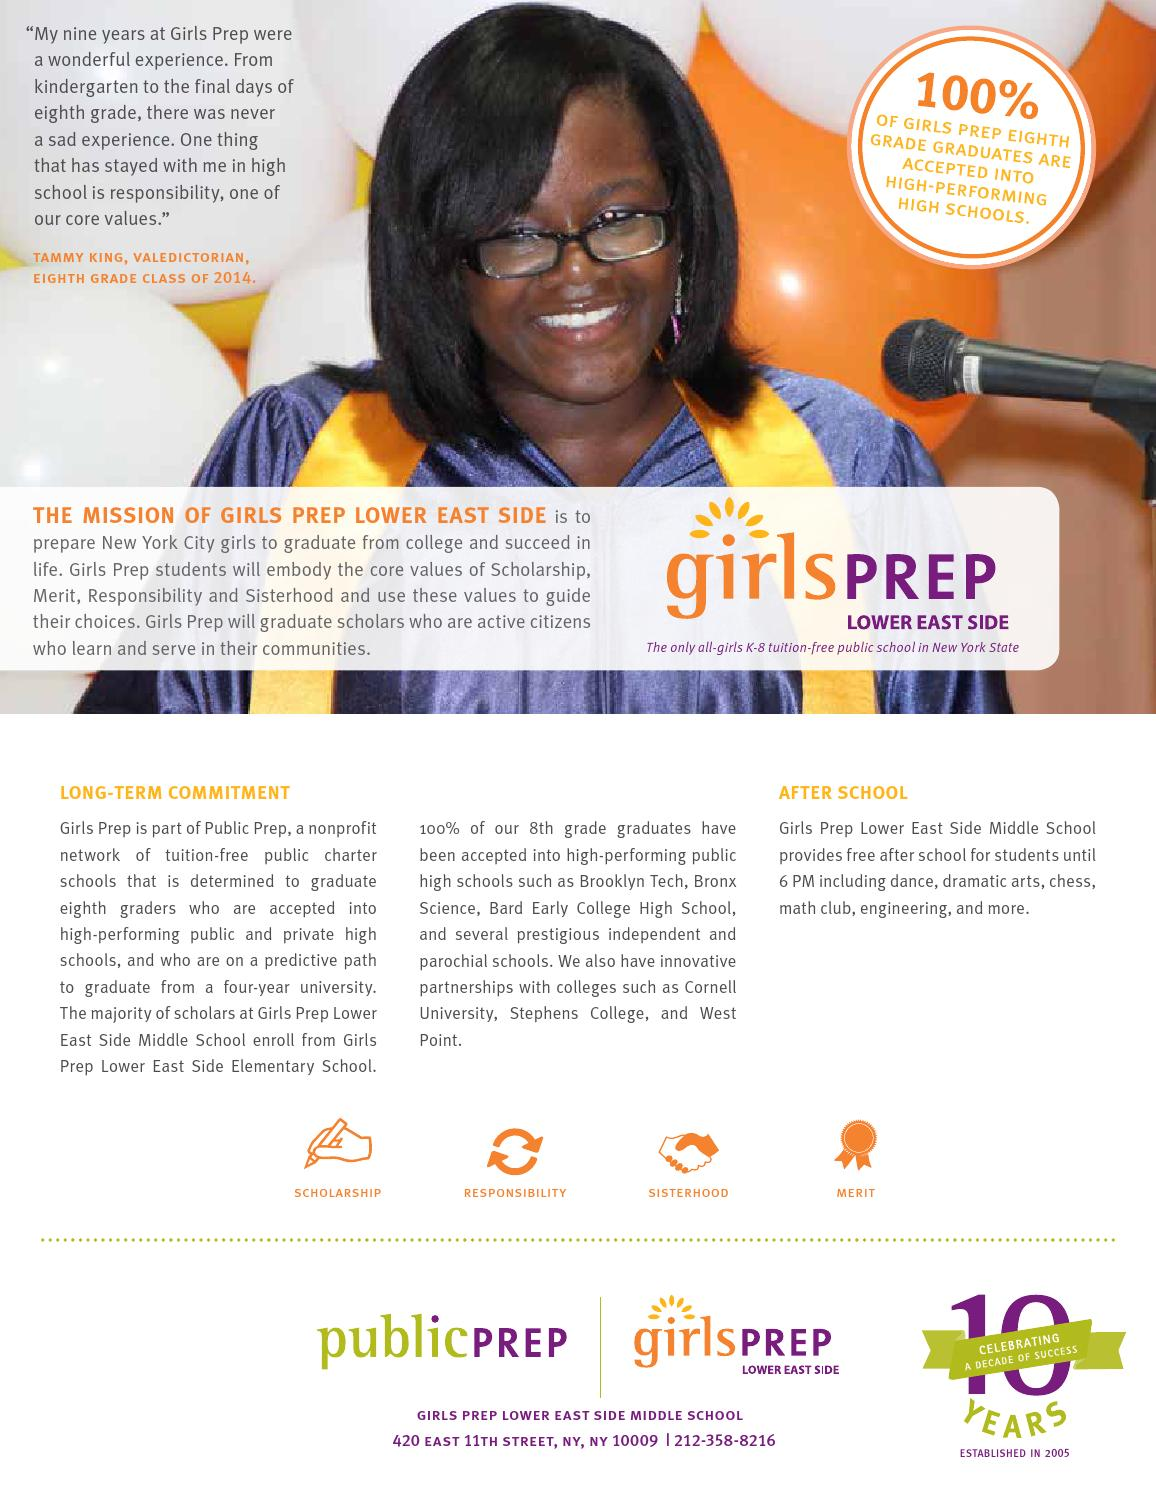 2015 Girls Prep Les Middle School One Pager By Public Prep Issuu